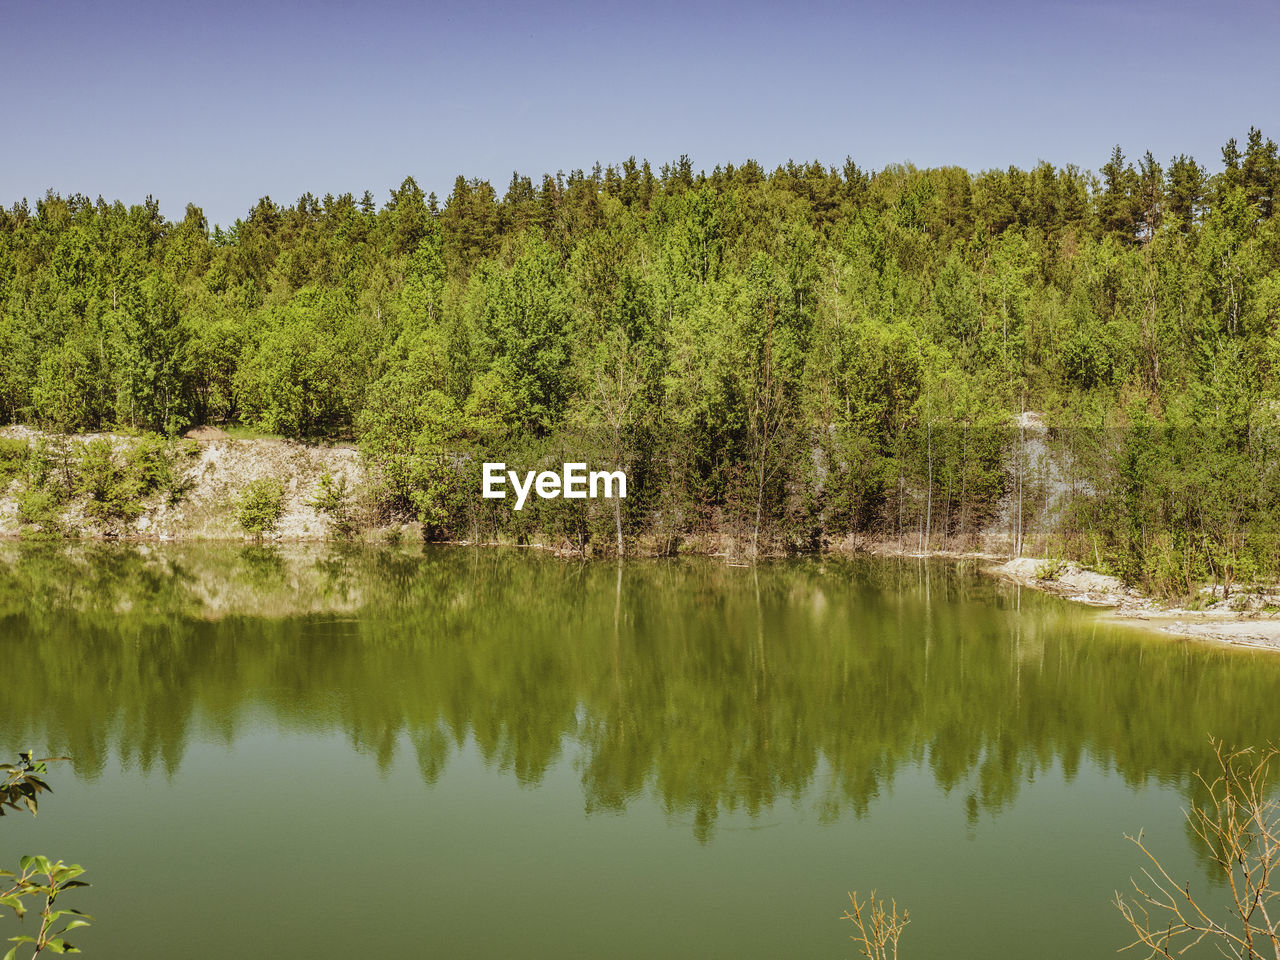 tree, plant, beauty in nature, reflection, water, tranquility, tranquil scene, lake, growth, scenics - nature, waterfront, green color, no people, day, nature, sky, clear sky, non-urban scene, idyllic, reflection lake